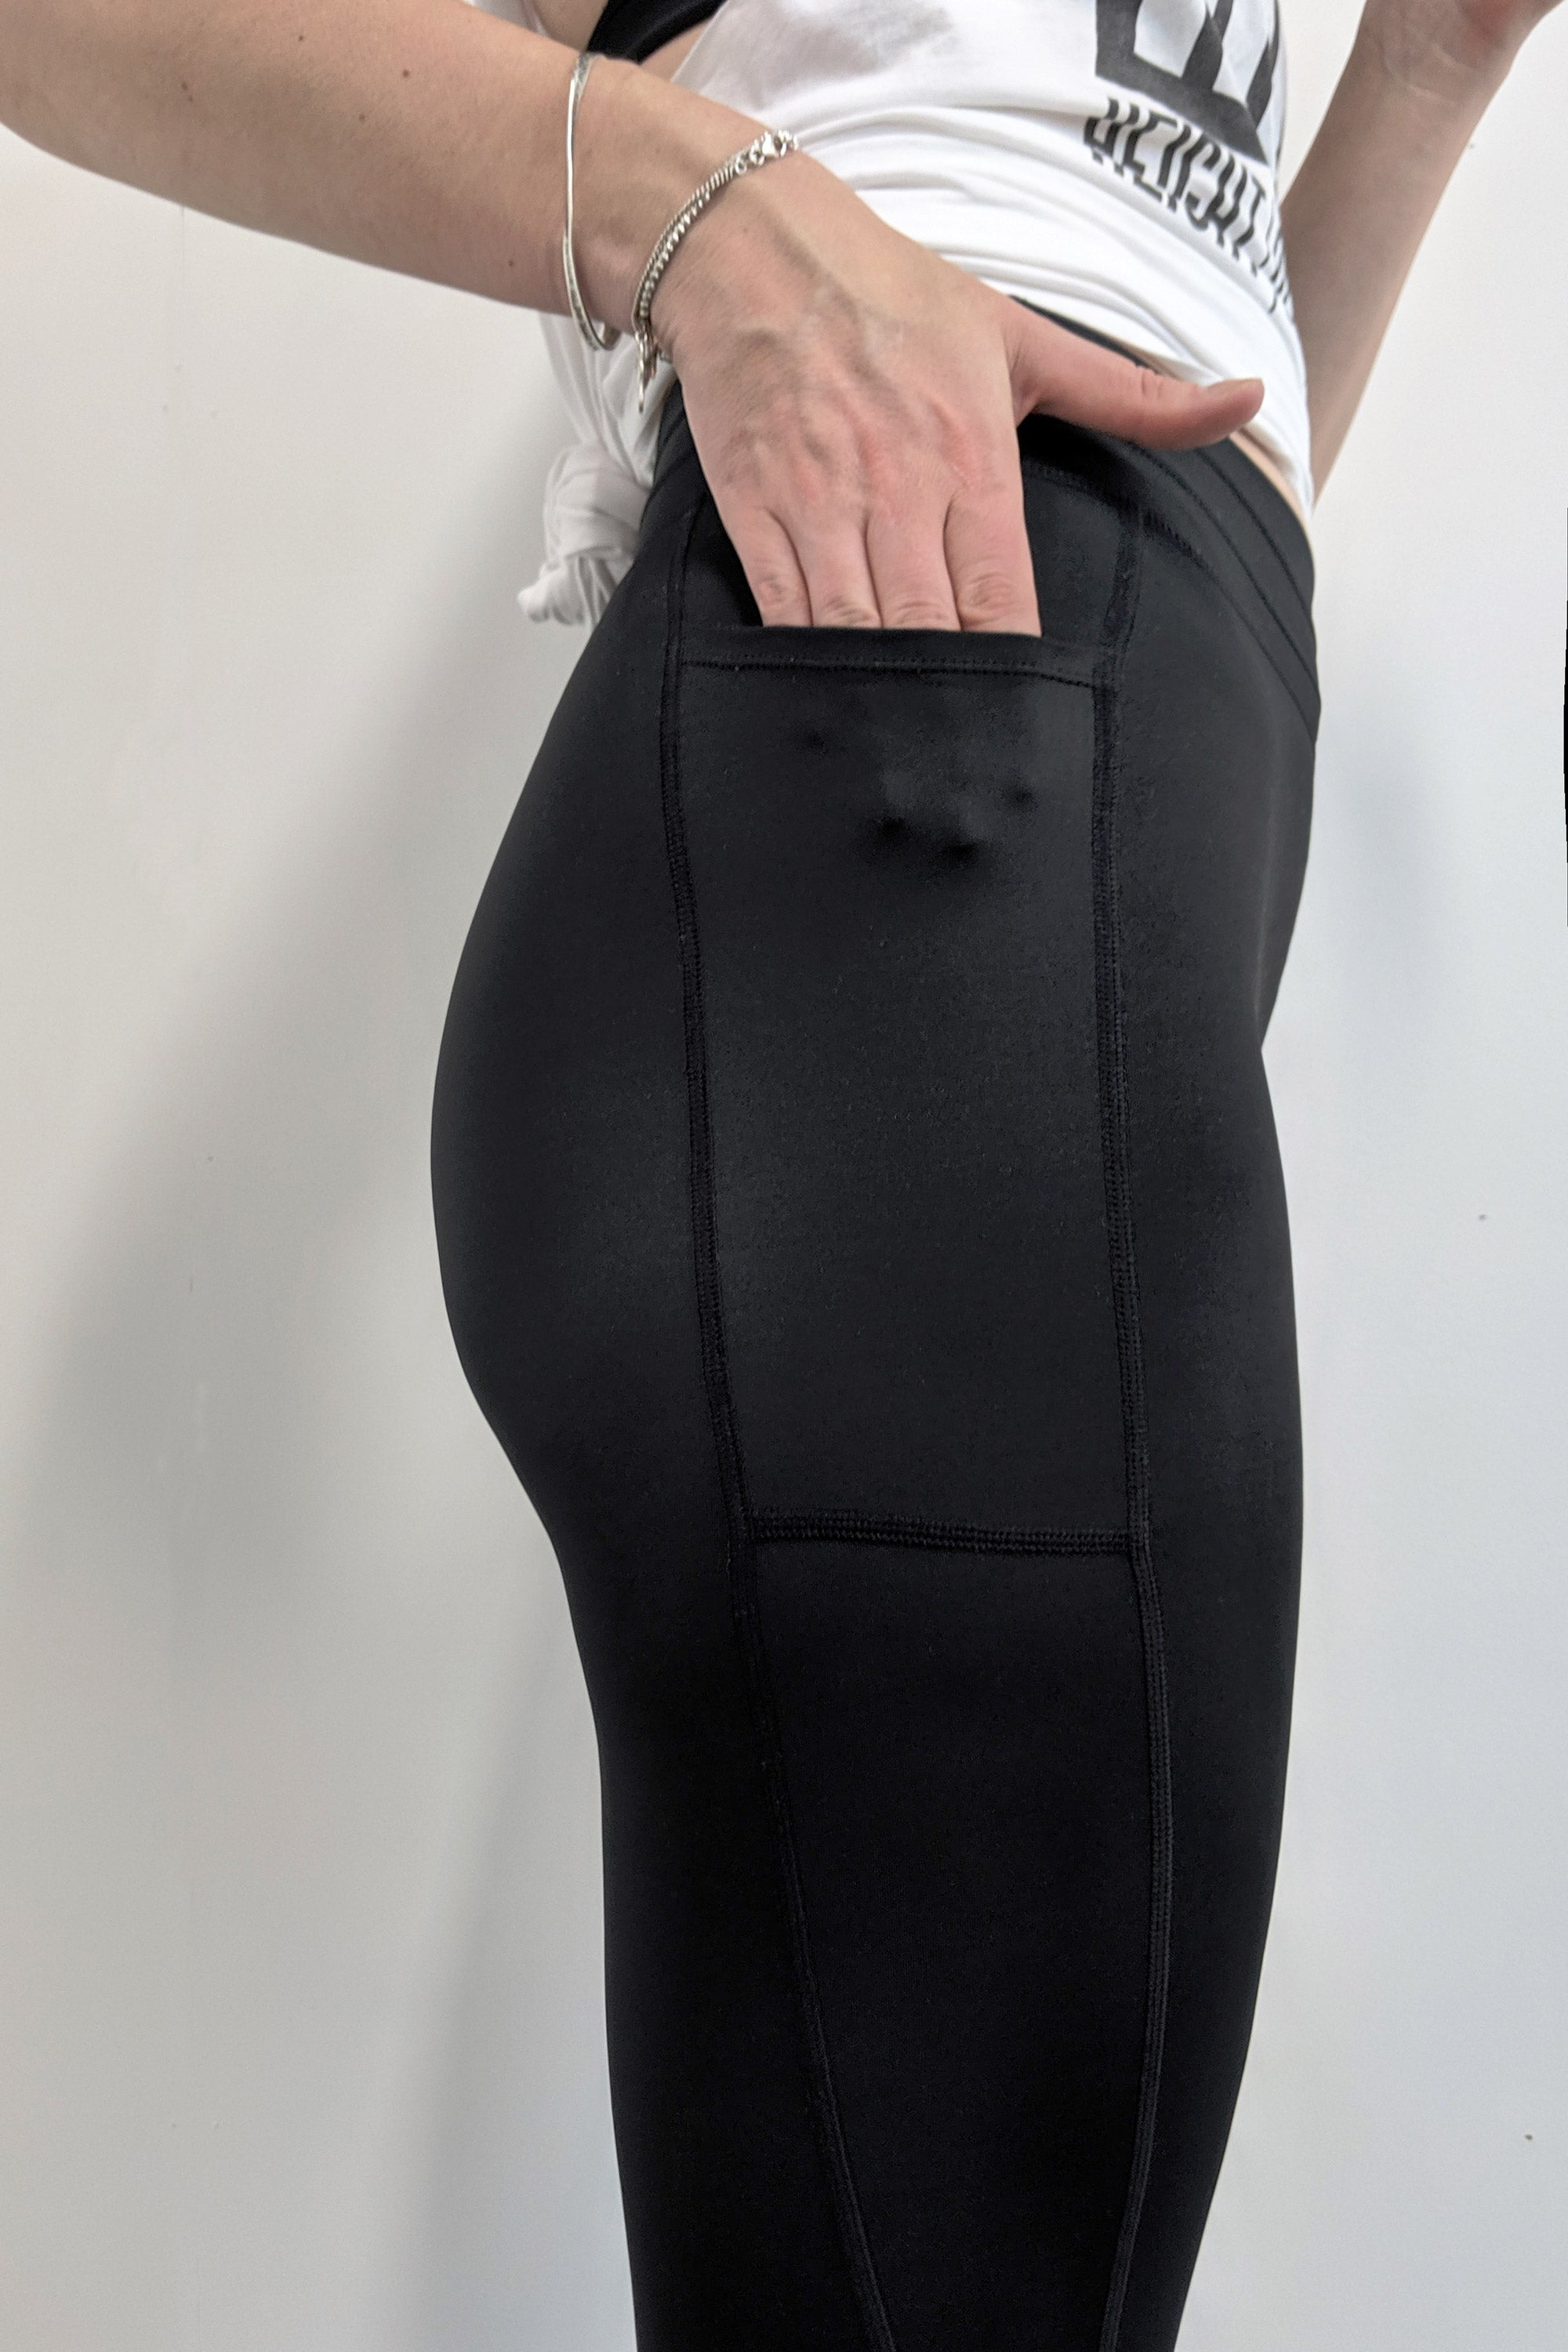 extra-long-black-strecth-leggings-with-pockets-bum-sculpting-and-flattering